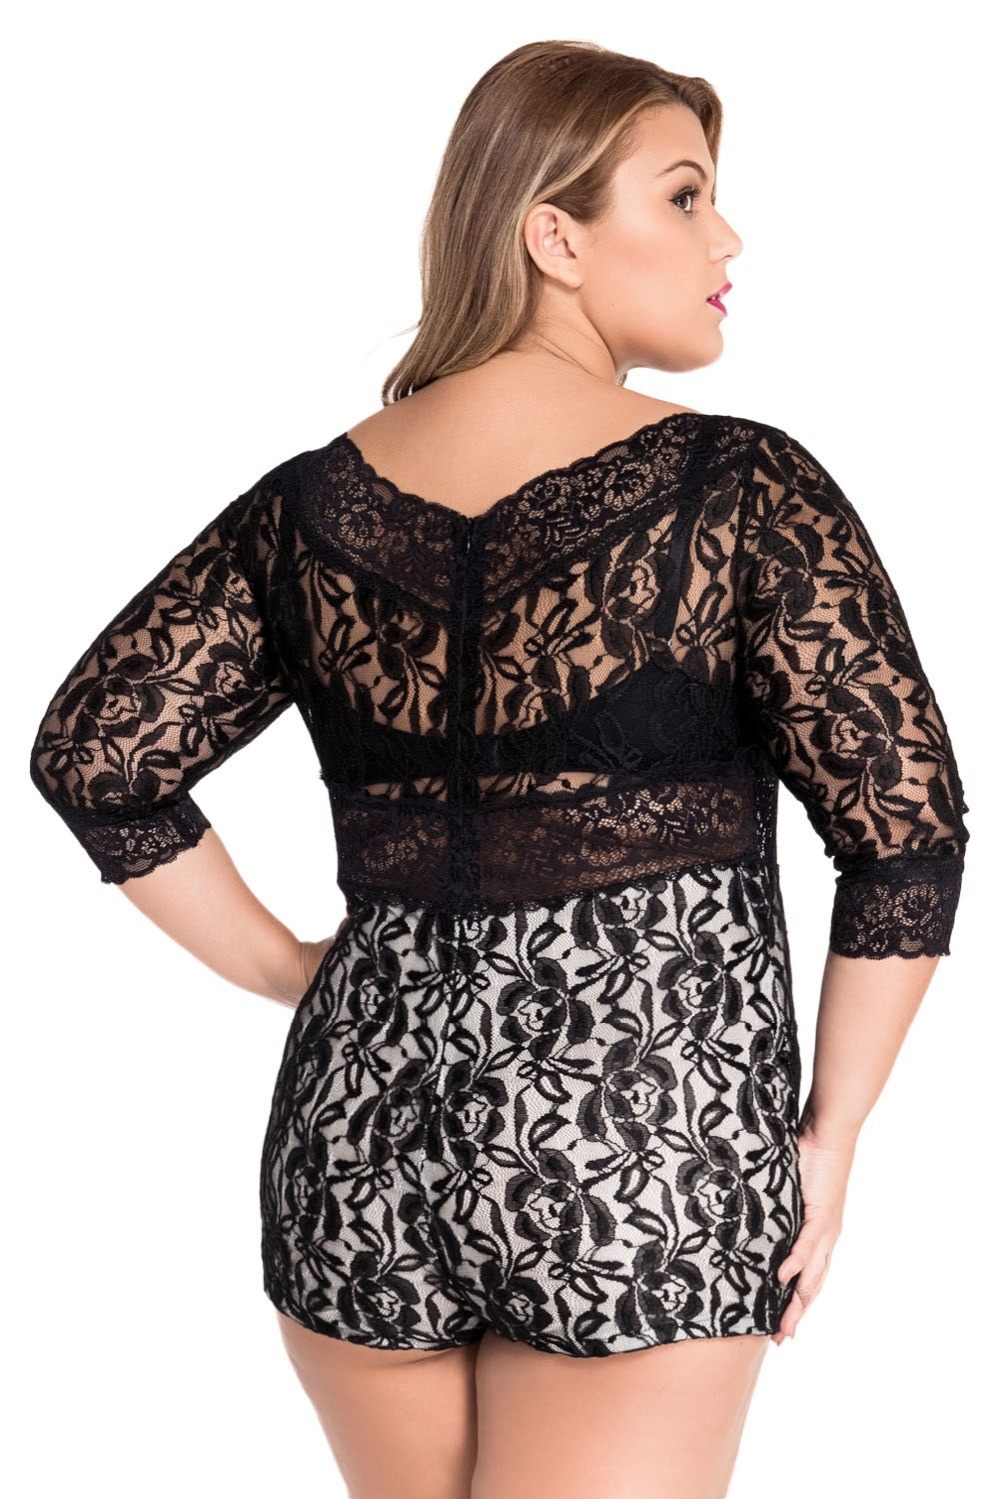 0fb83b023b85 Women Playsuits Shorts plus Size XL Black Lace Overlay Off shoulder Romper  Womens Jumpsuit Bodysuits Monos Bodycon Overalls-in Rompers from Women s  Clothing ...